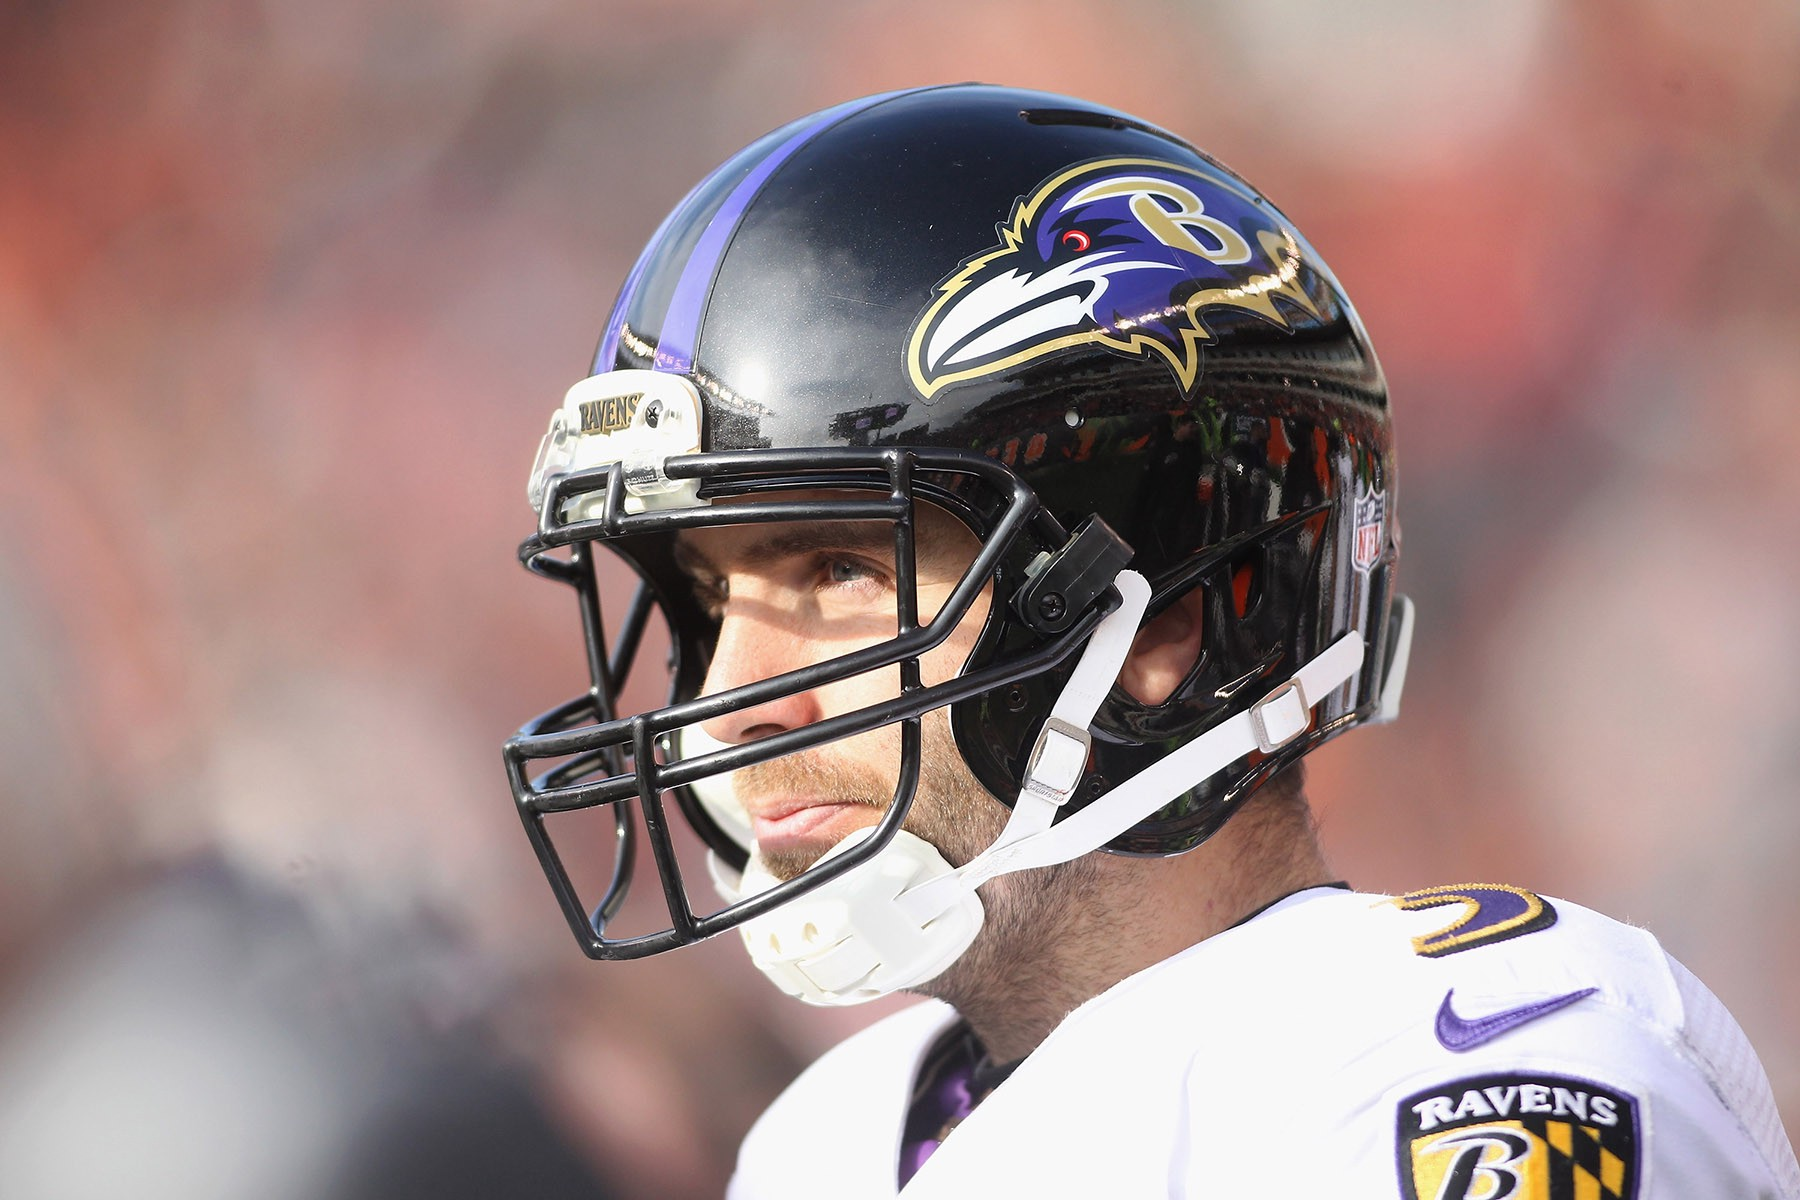 Flacco out with back injury; Ravens may bring in Kaepernick